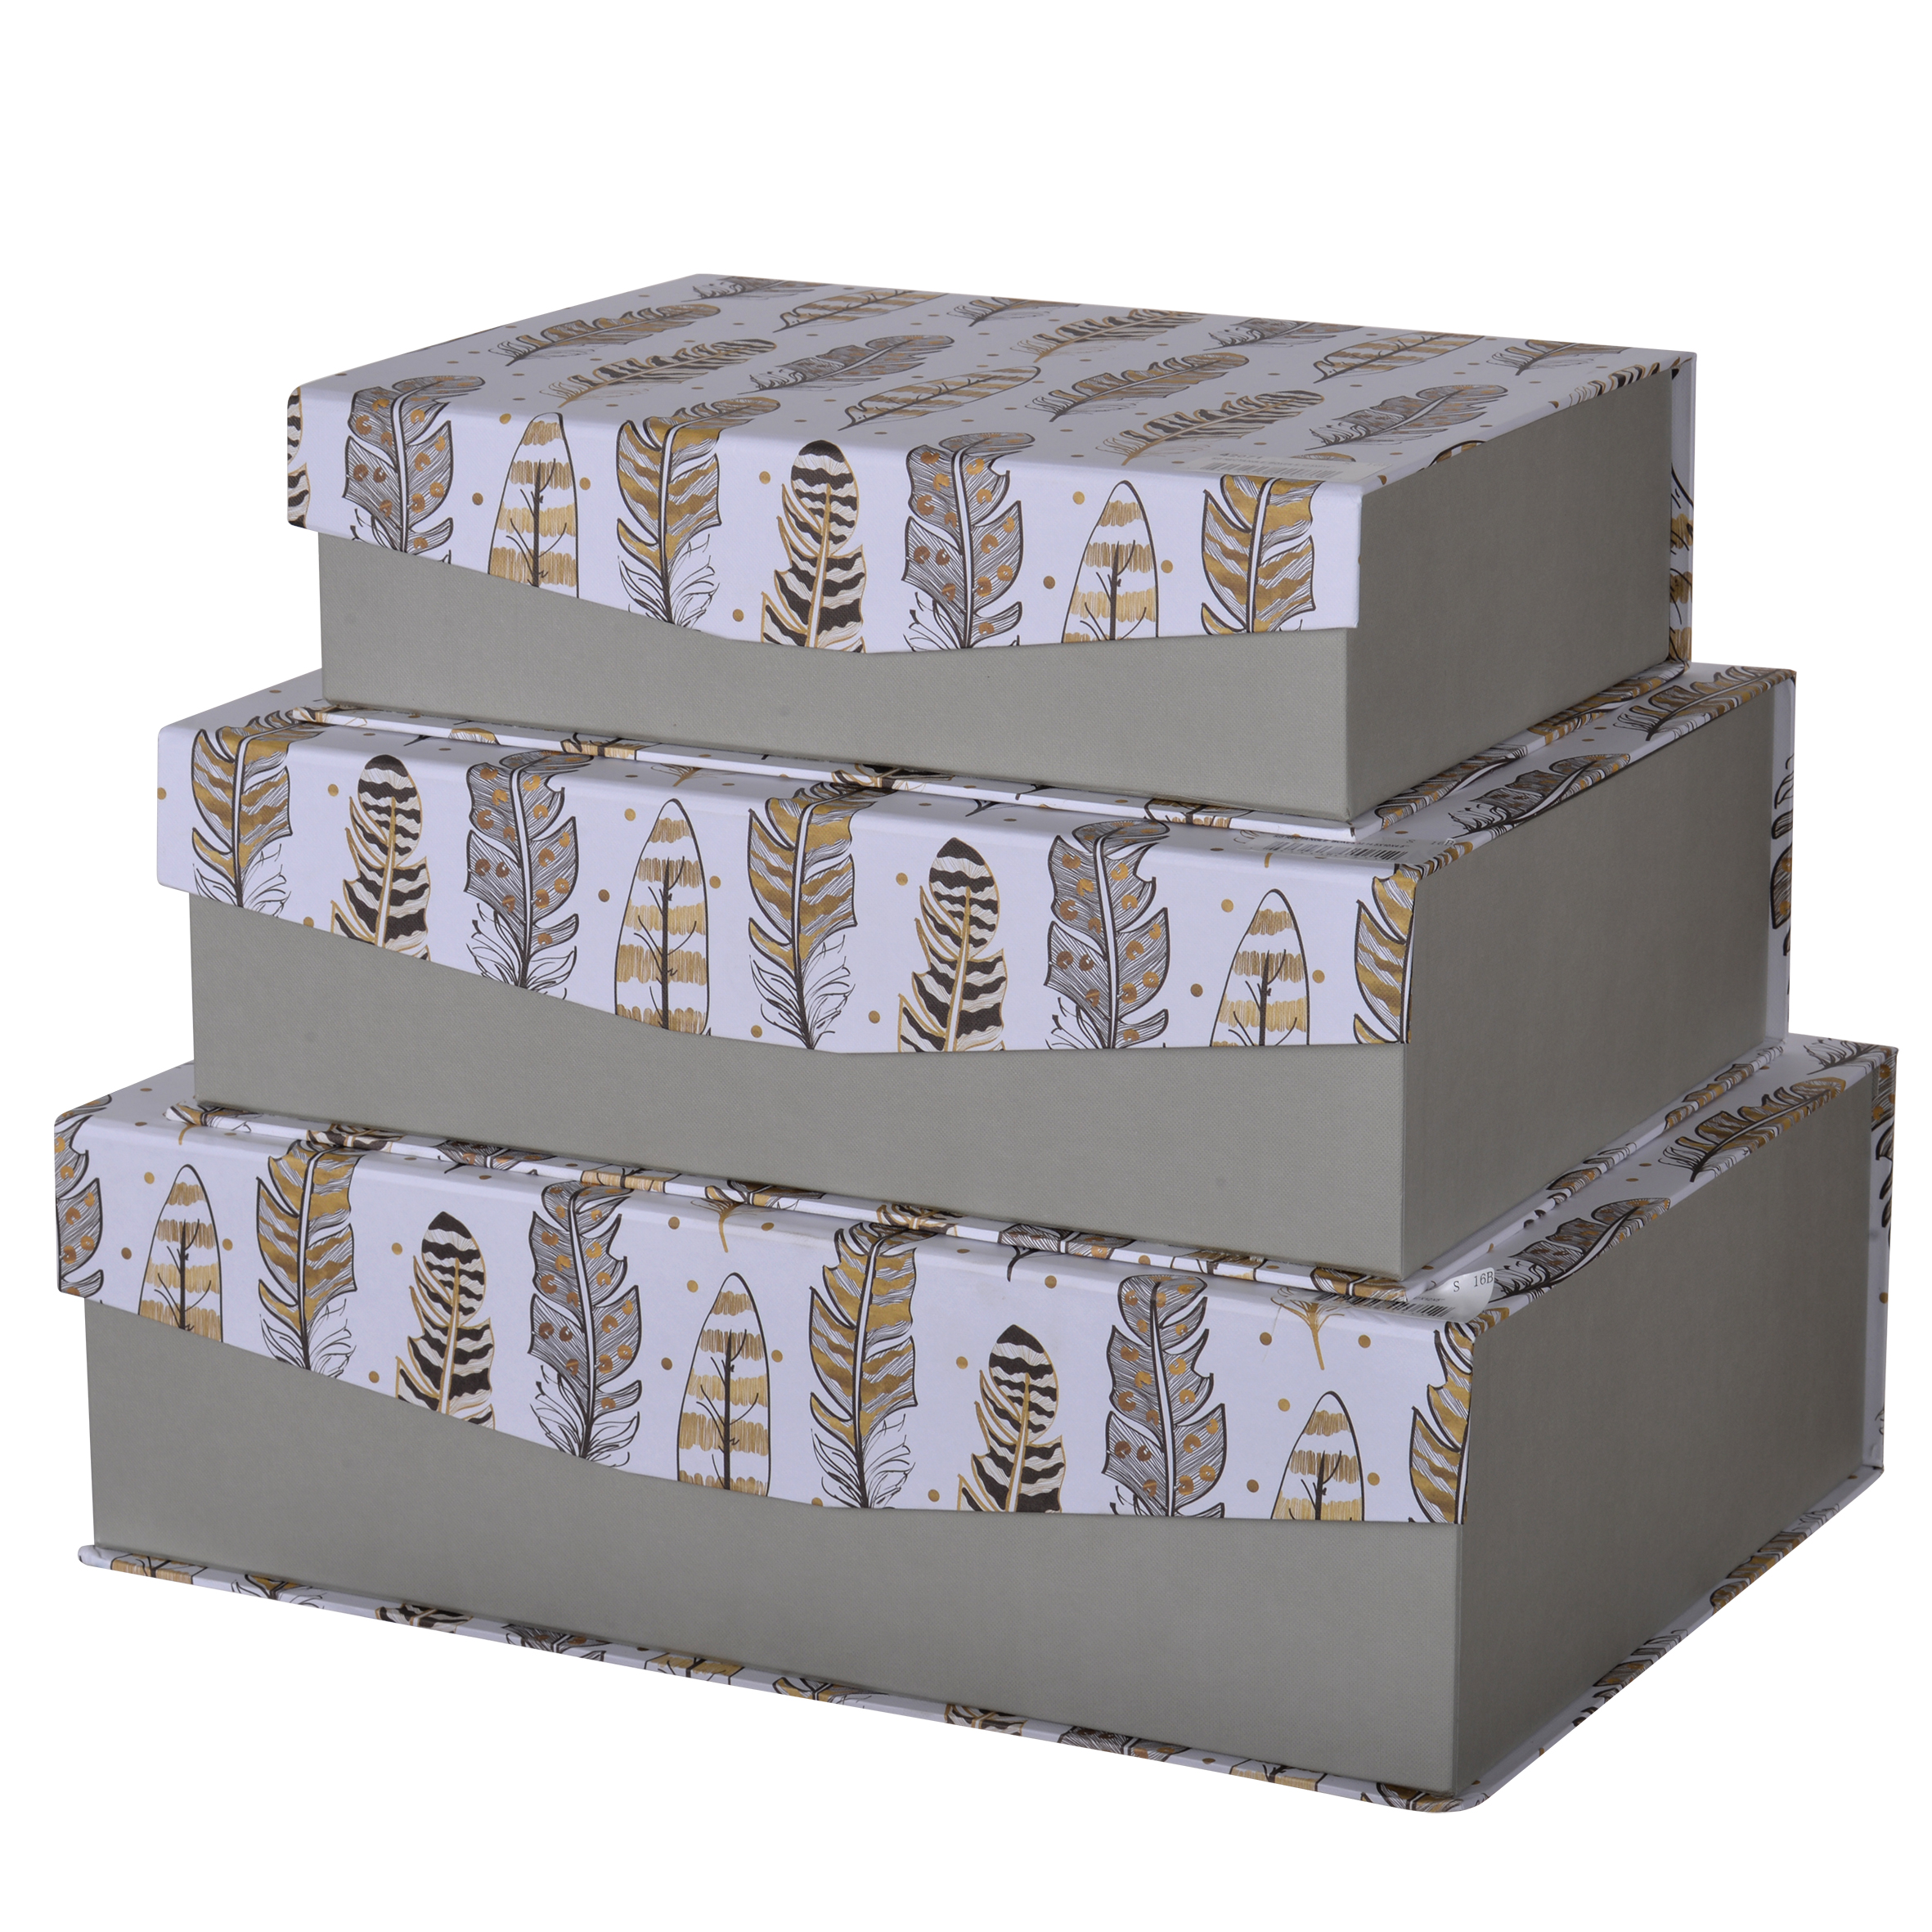 A&B Home Albany Storage Boxes with Feather Motif, Set of 3